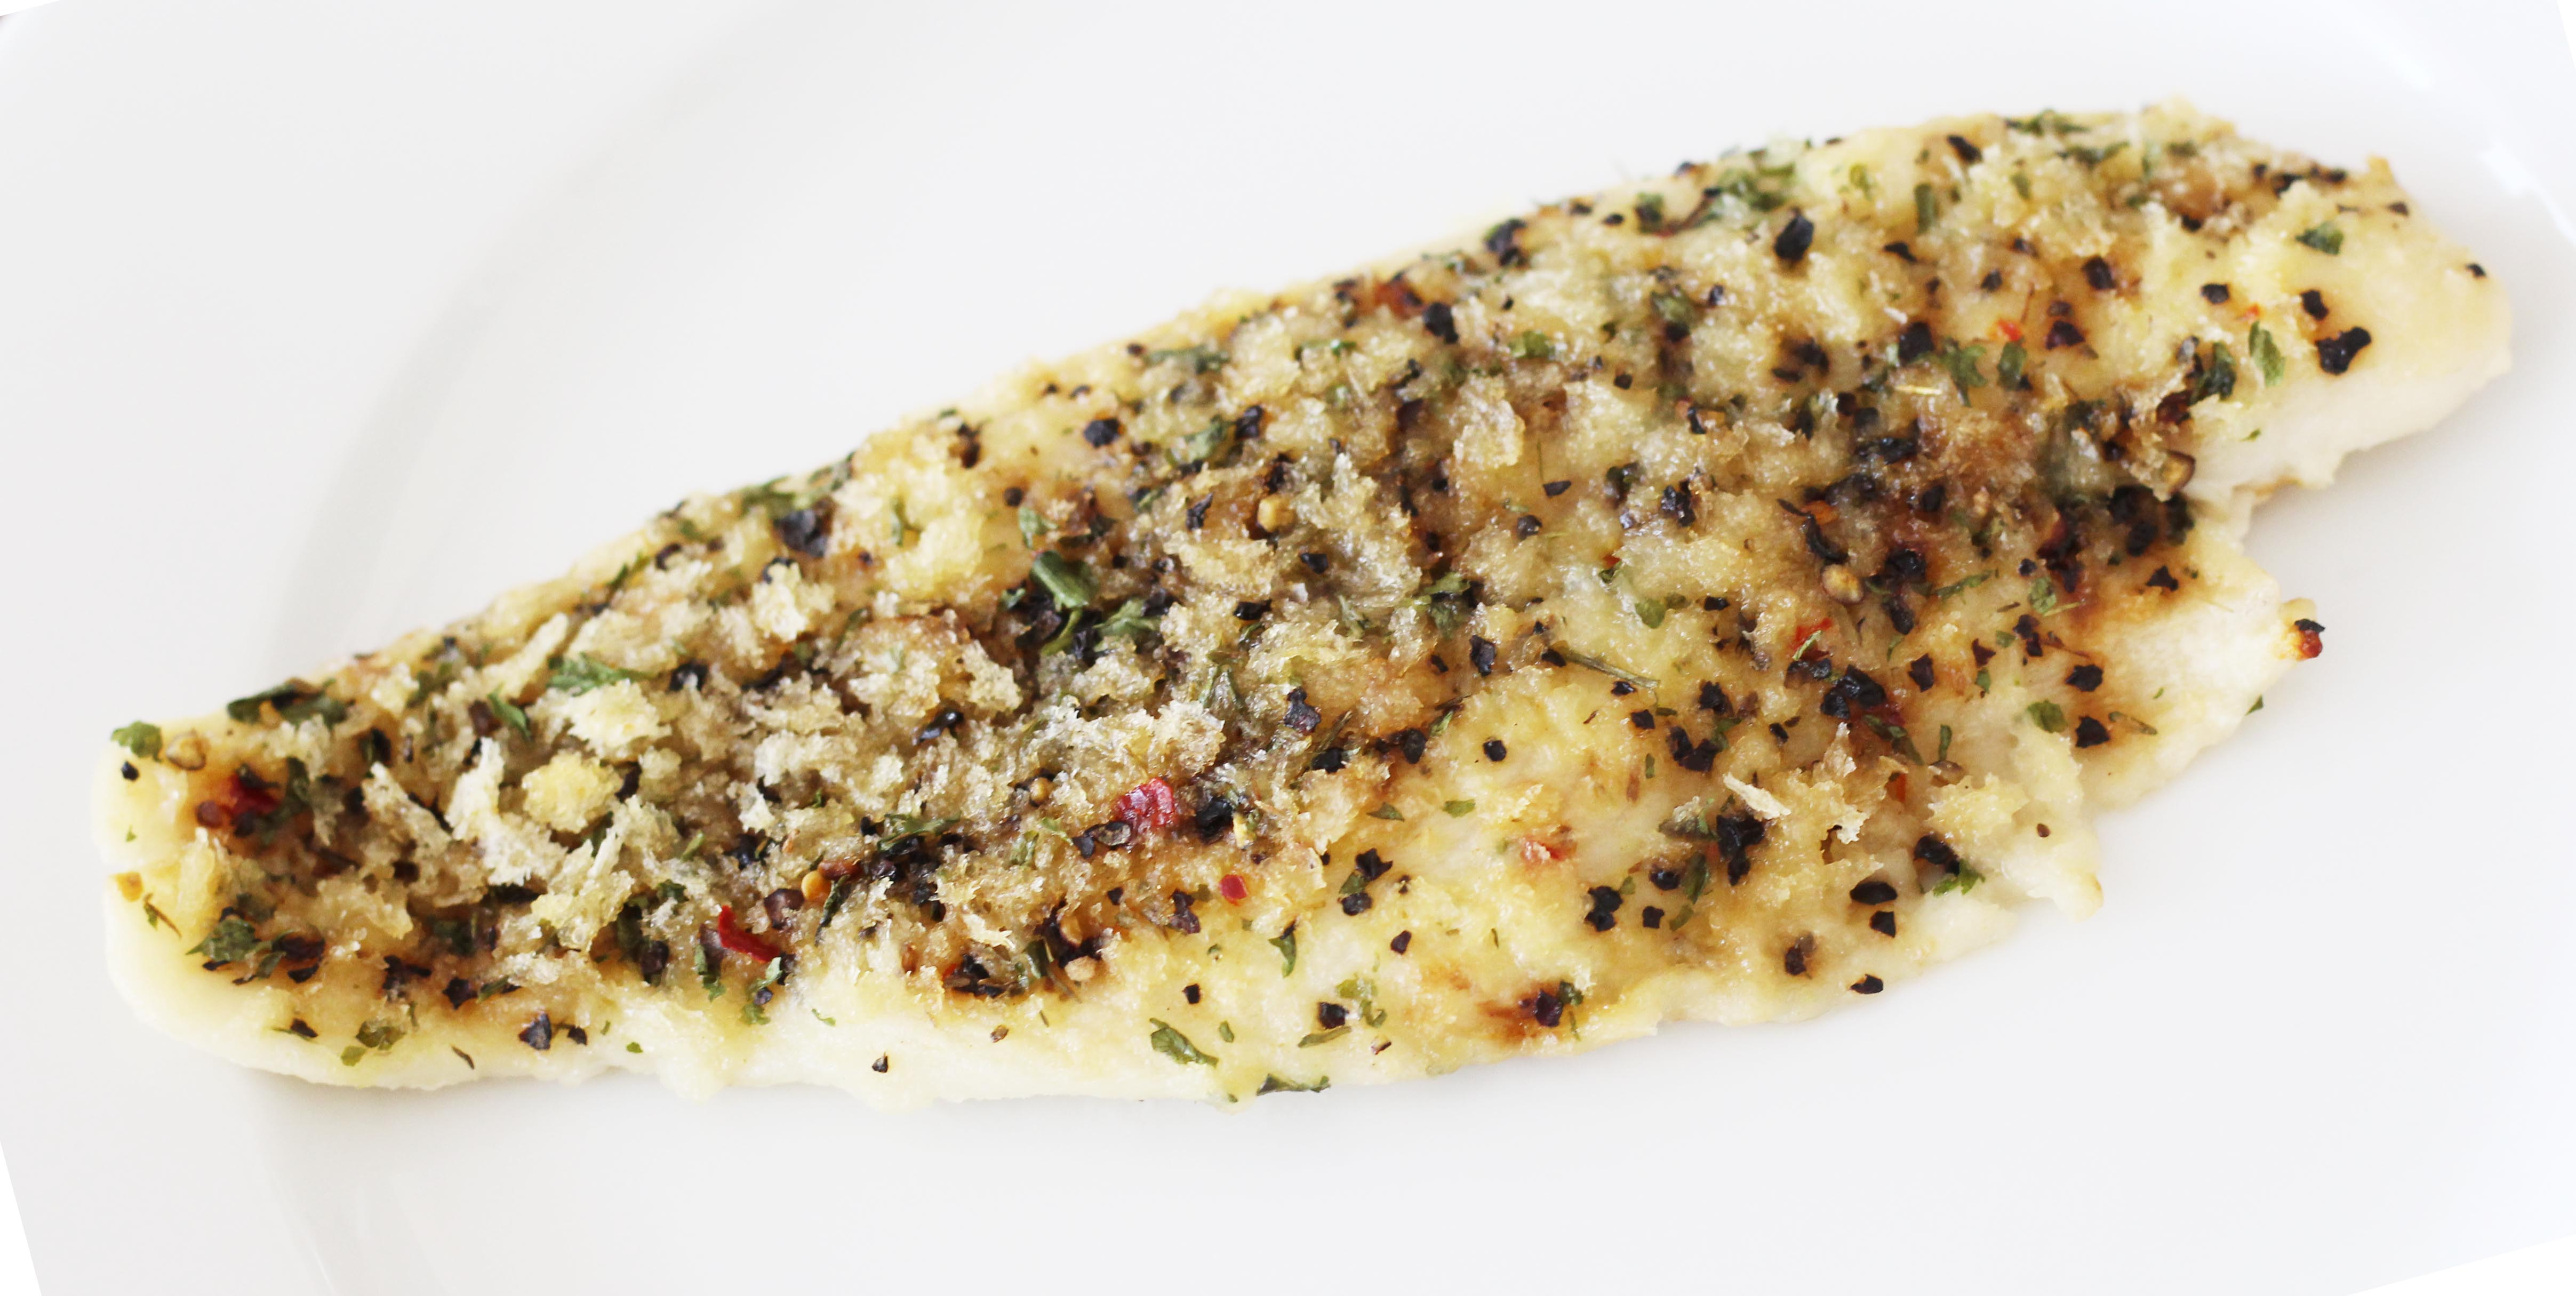 Crusted fish fillets